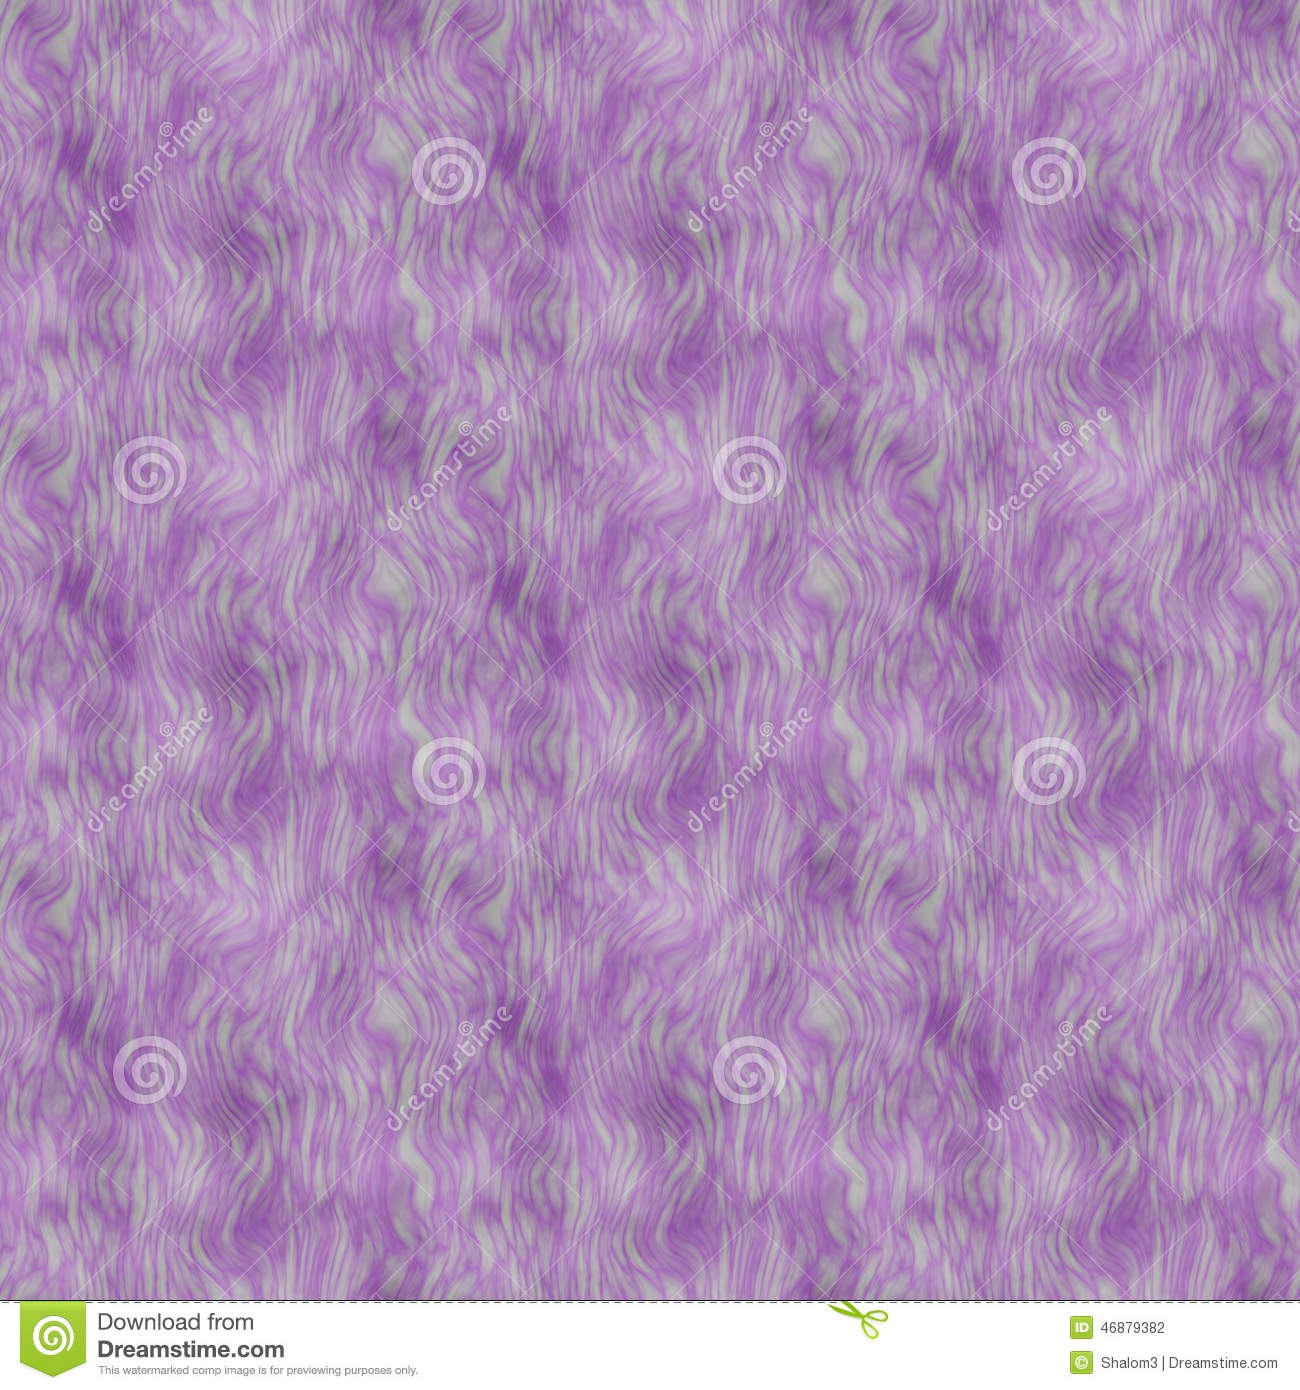 Amazing Wallpaper Marble Lavender - marble-texture-purple-drawing-seamless-wallpaper-46879382  Picture_439545.jpg